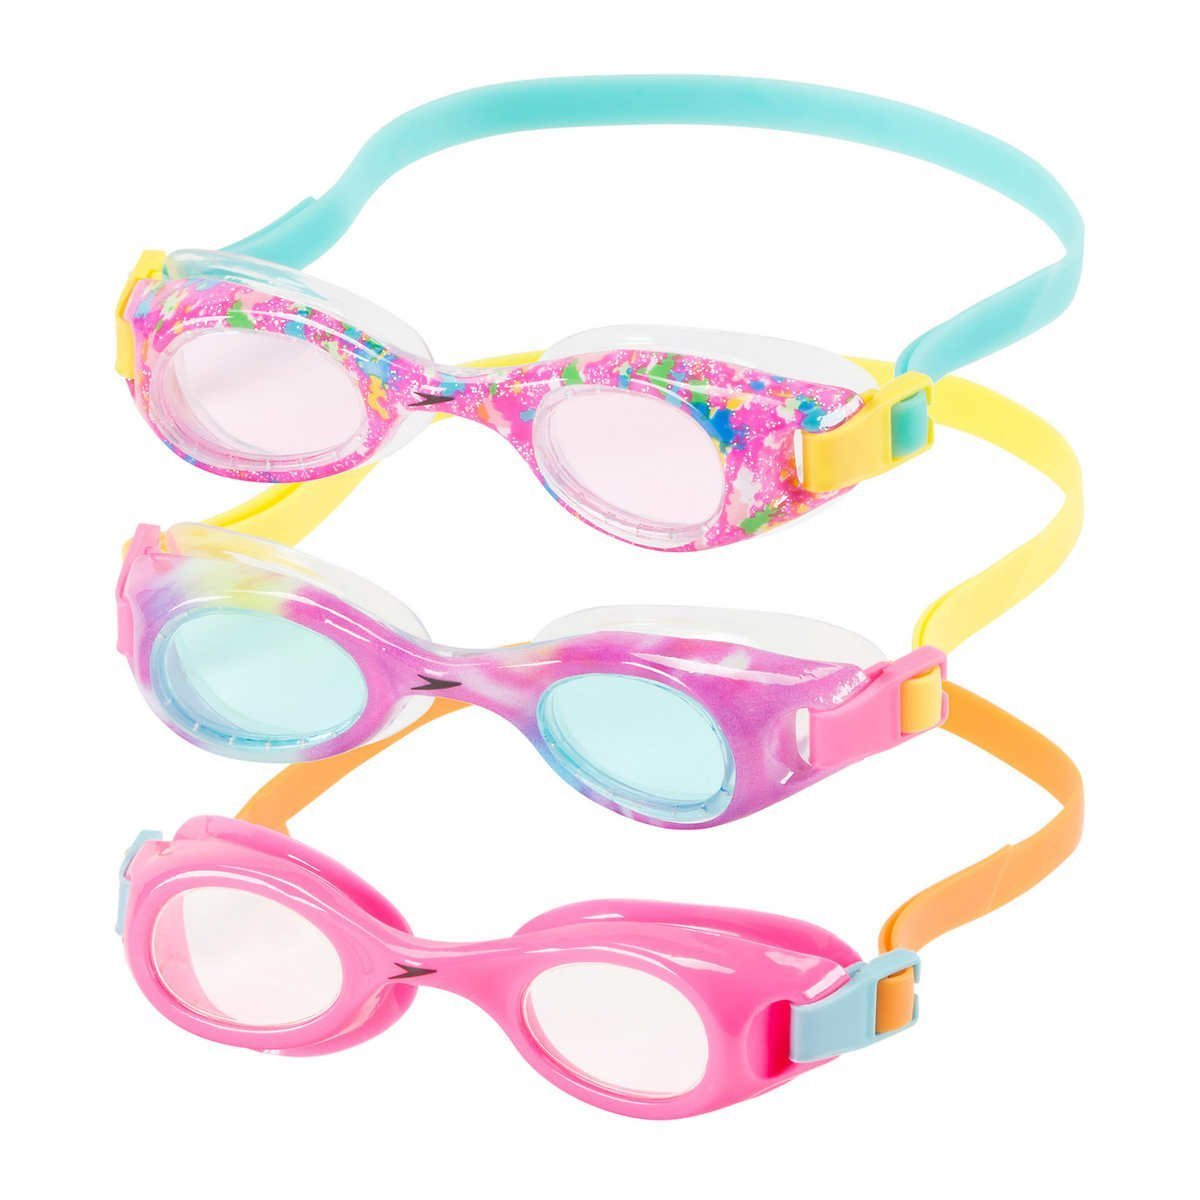 Speedo Kids Swim Goggles Triple Goggle Pack ~ Fun Prints (Orange) by Speedo